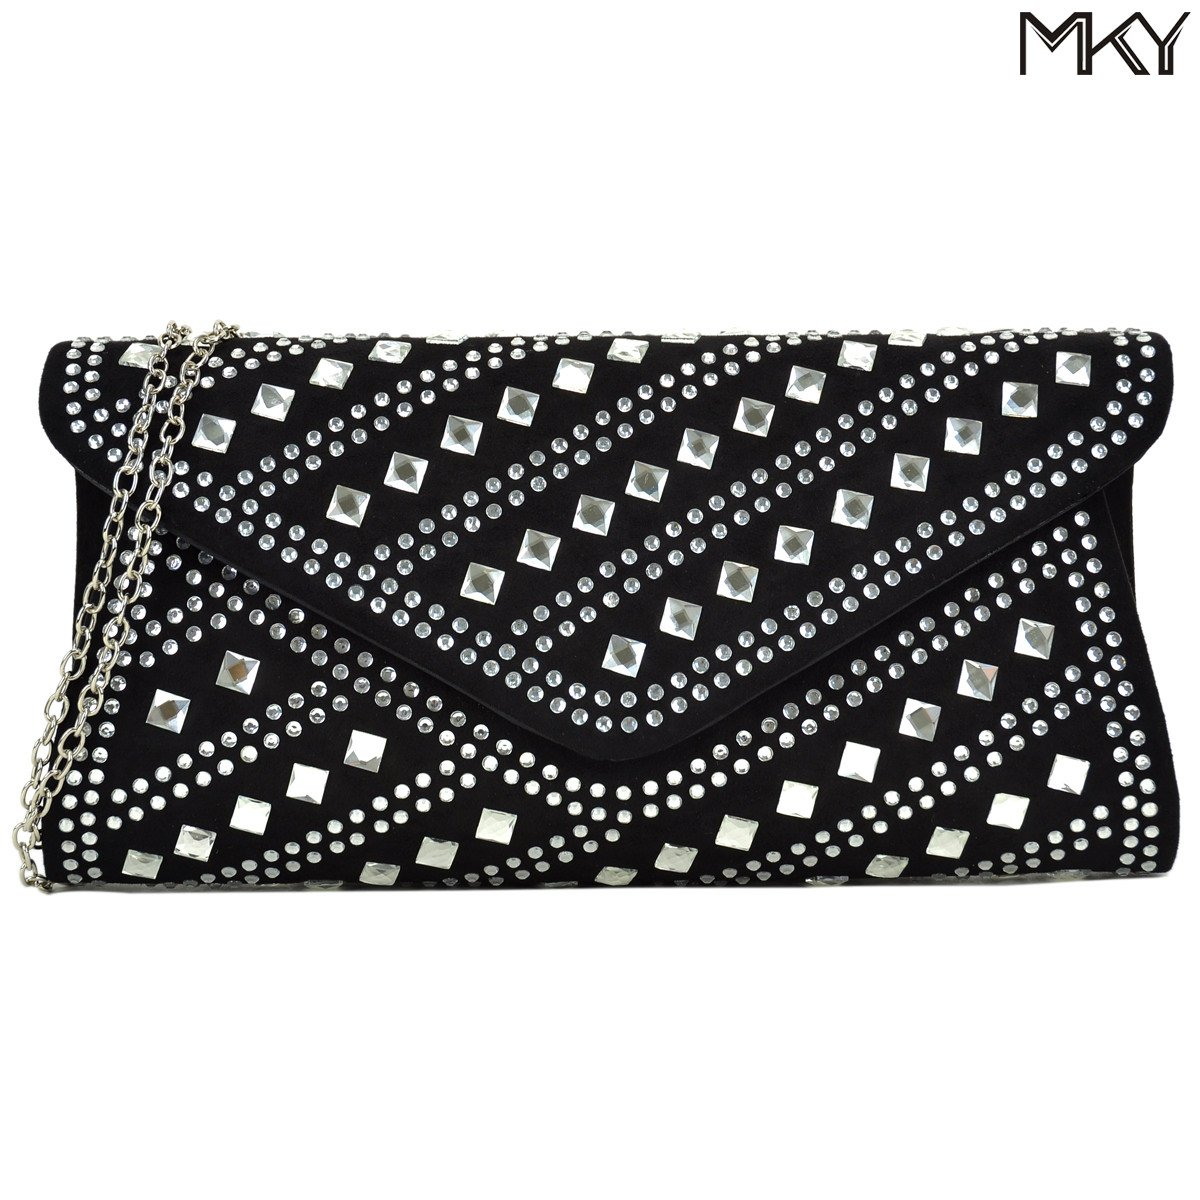 Studded Rhinestone Clutch Purse Evening Bag Crystal Handbag Glitter Sequin Party by MKY